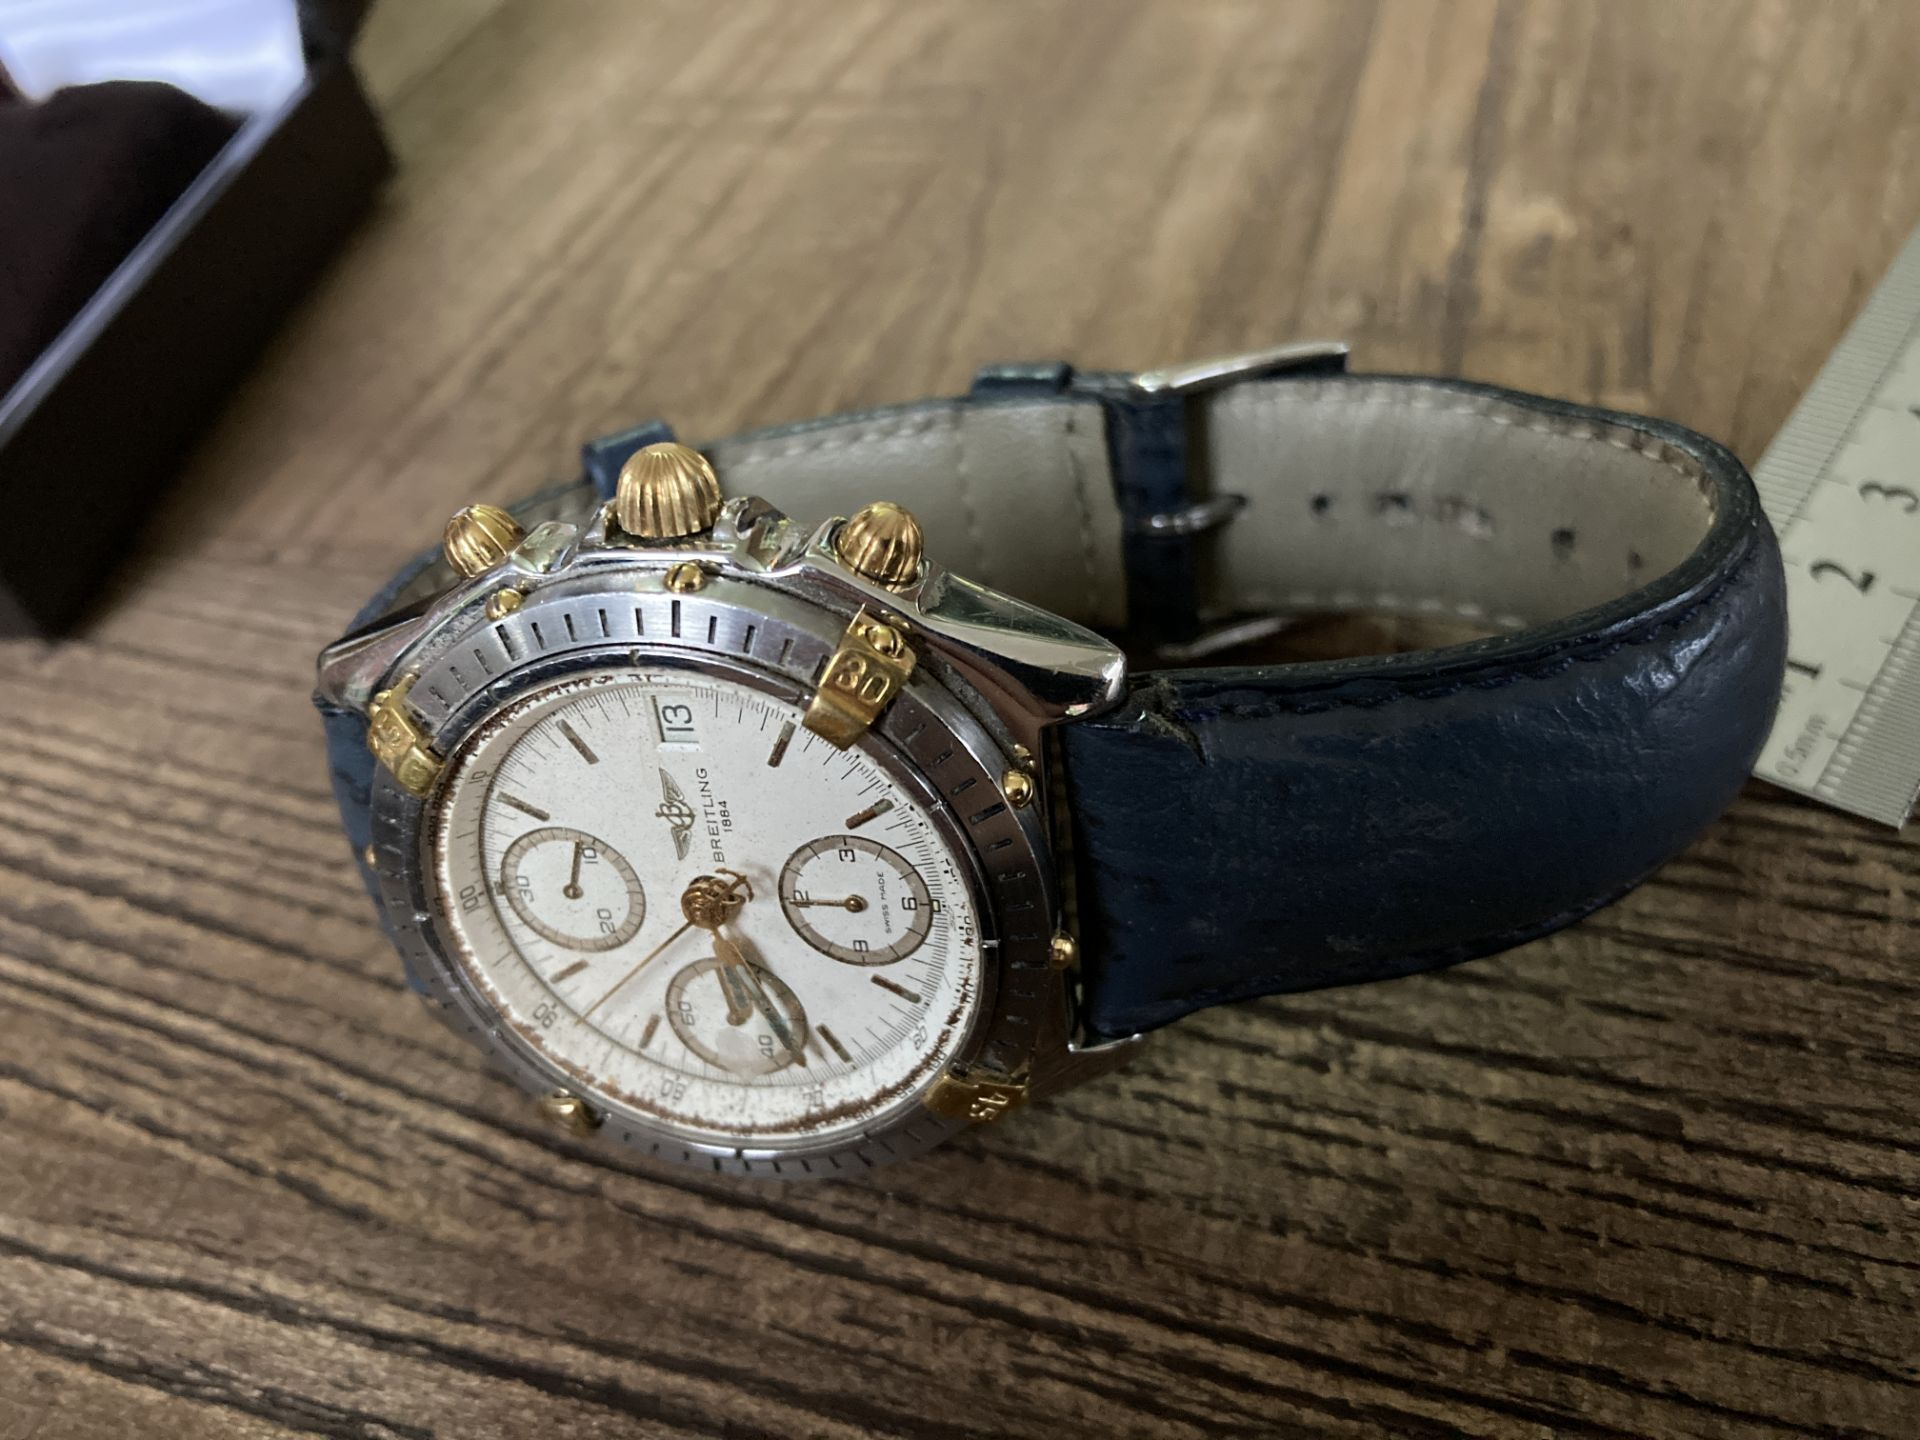 BREITLING B13048 STEEL AND GOLD CHRONO - 39MM APPROX. - Image 2 of 3